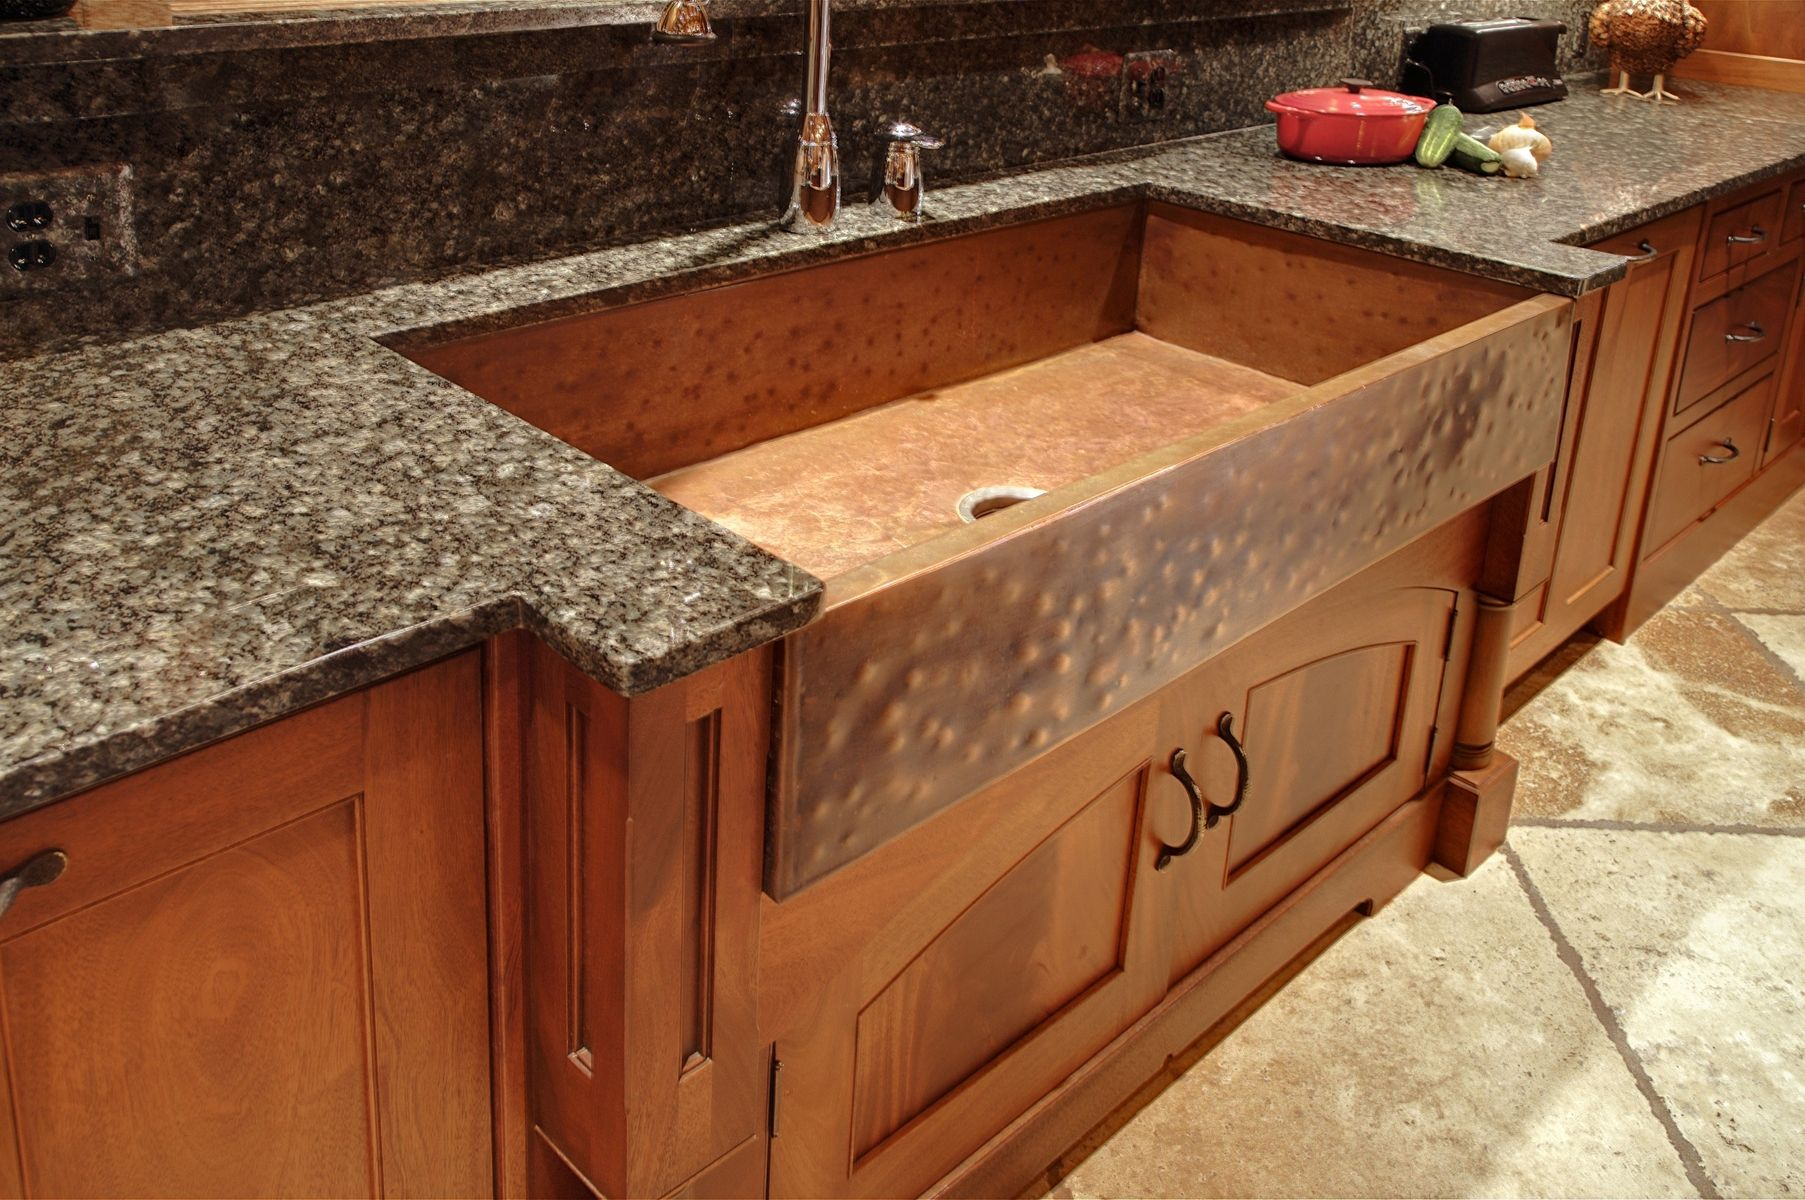 Copper farm sink and stainless steel water faucet for kitchen dark granite countertop wooden base kitchen cabinet system